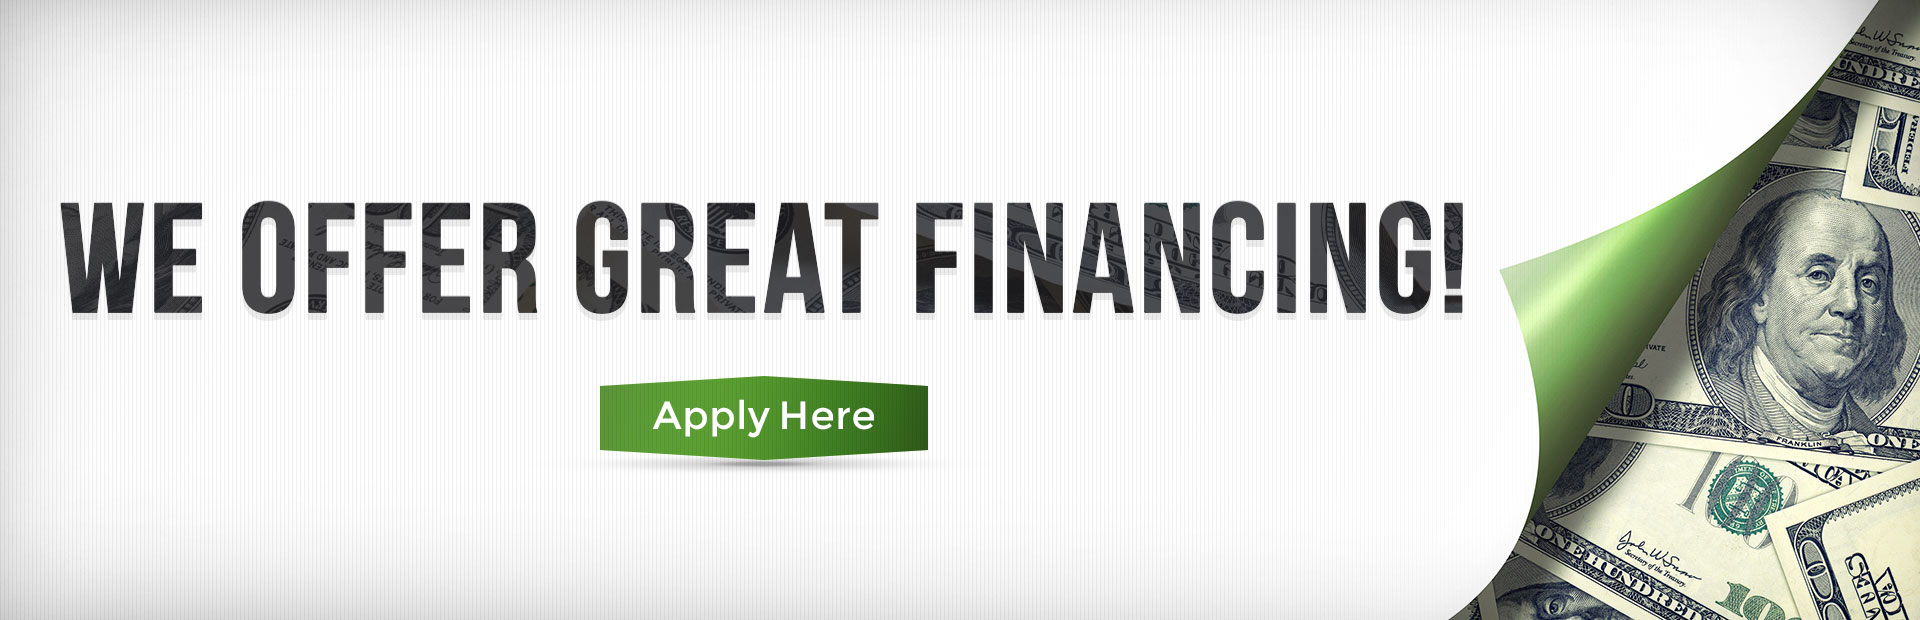 We offer great financing! Click here for details.